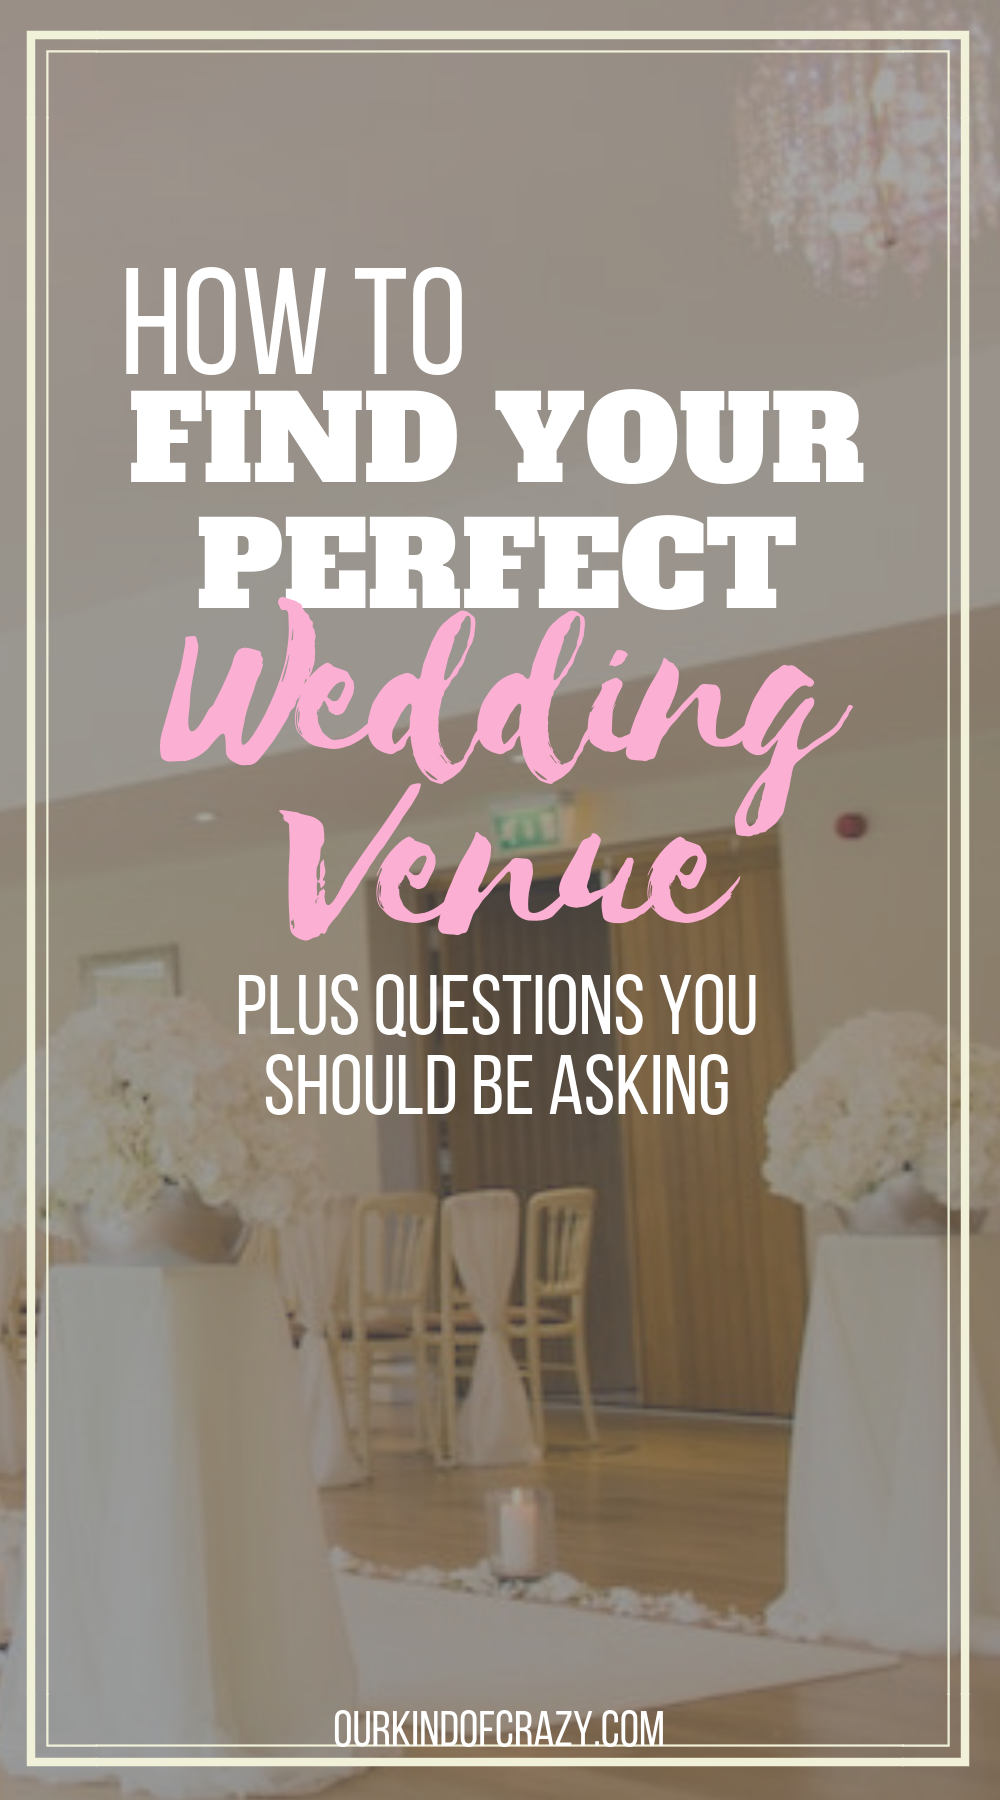 How to Find Your Perfect Wedding Venue. Plus all the questions you should ask your venue before signing a contract.